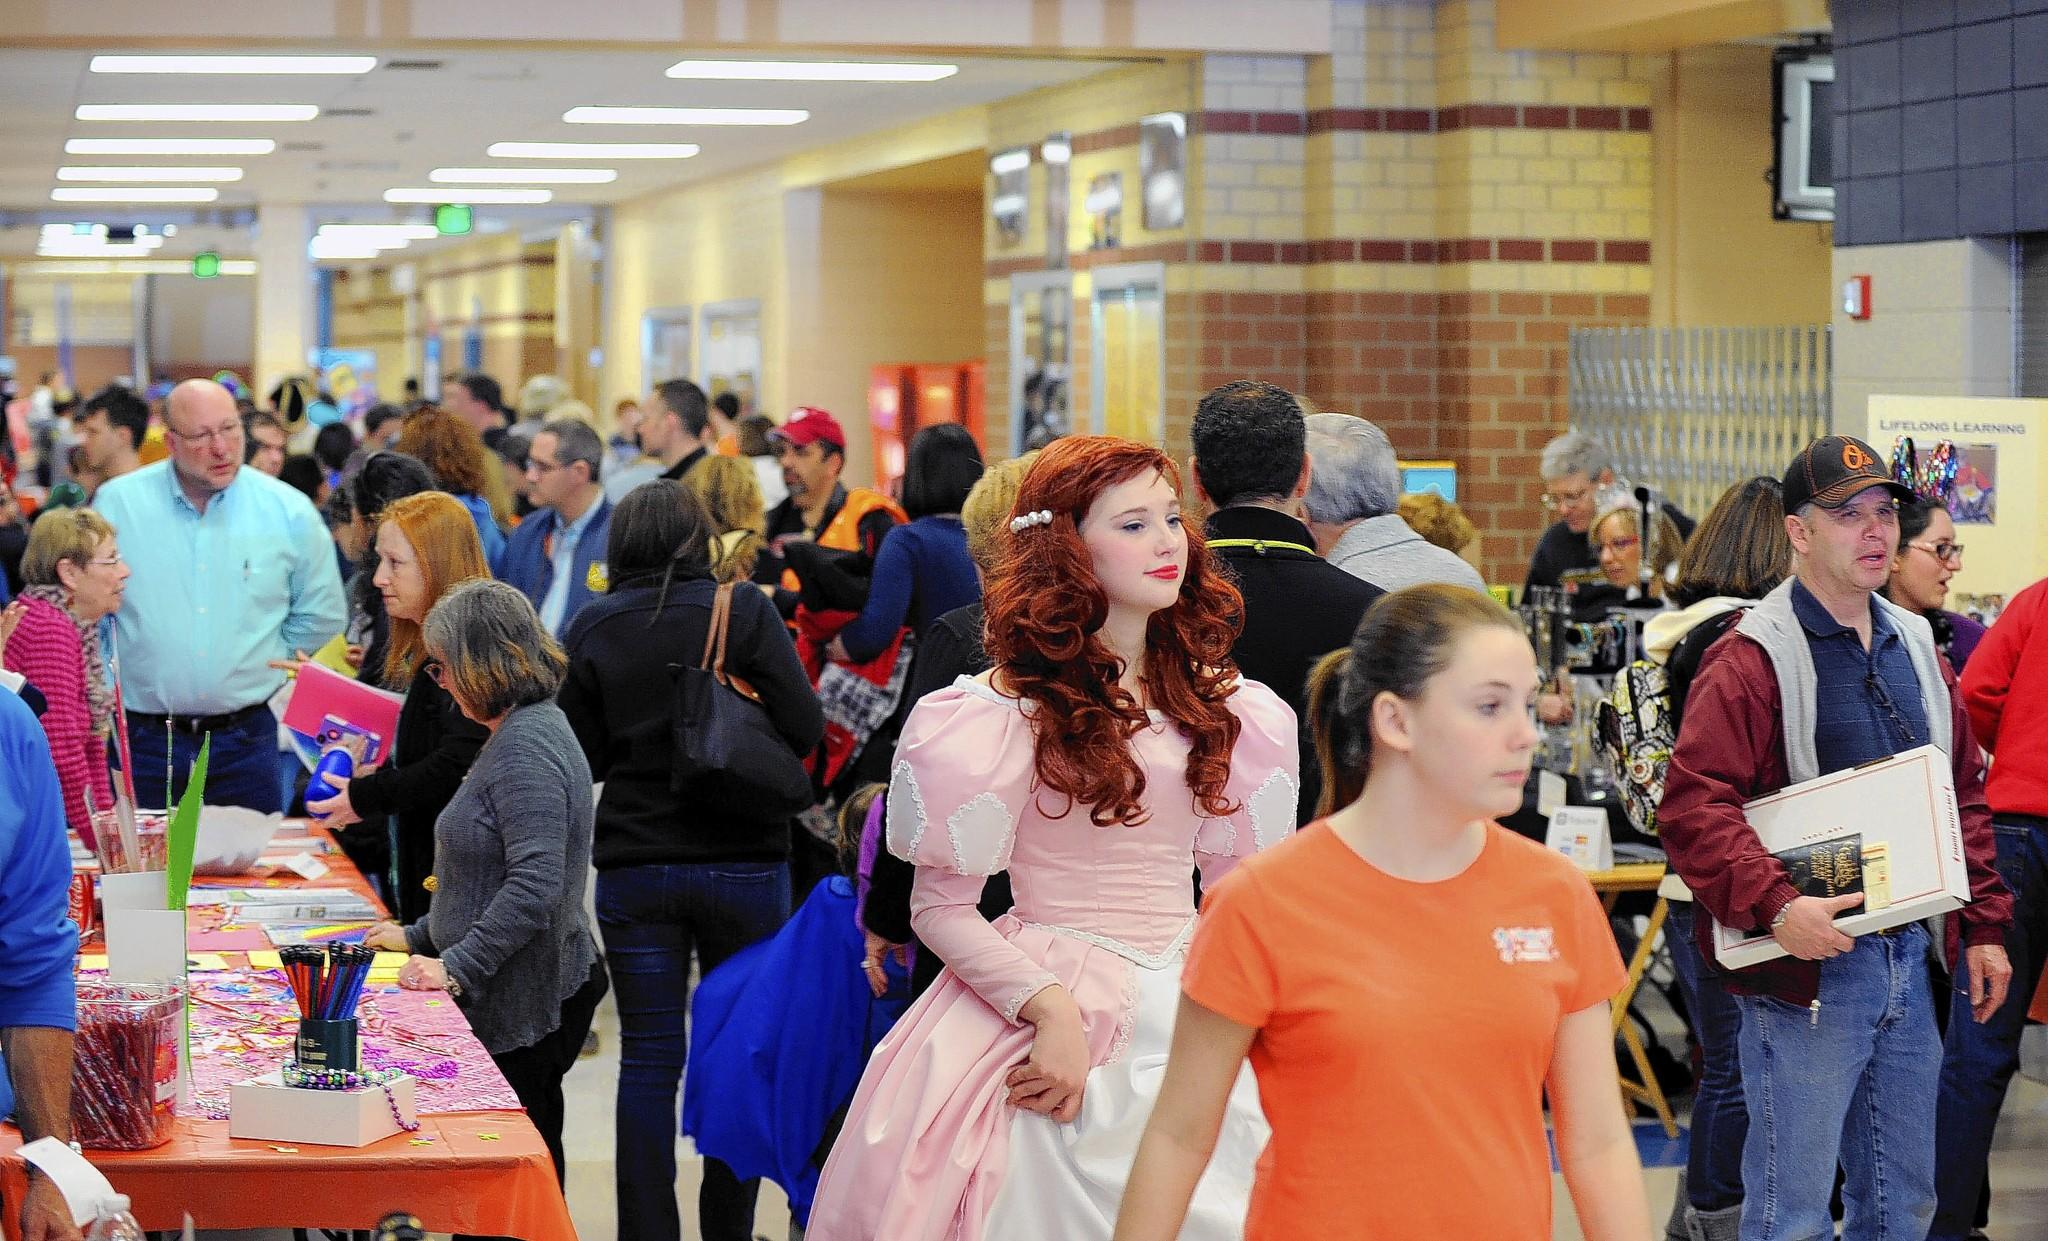 The Jewish Federation of Howard County 's Purim Palloza drew a large crowd Sunday, with many wearing costumes. The event included games and carnival refreshment to celebrate the Jewish holiday that commemorates the deliverance of the Jewish people in the ancient Persian Empire.